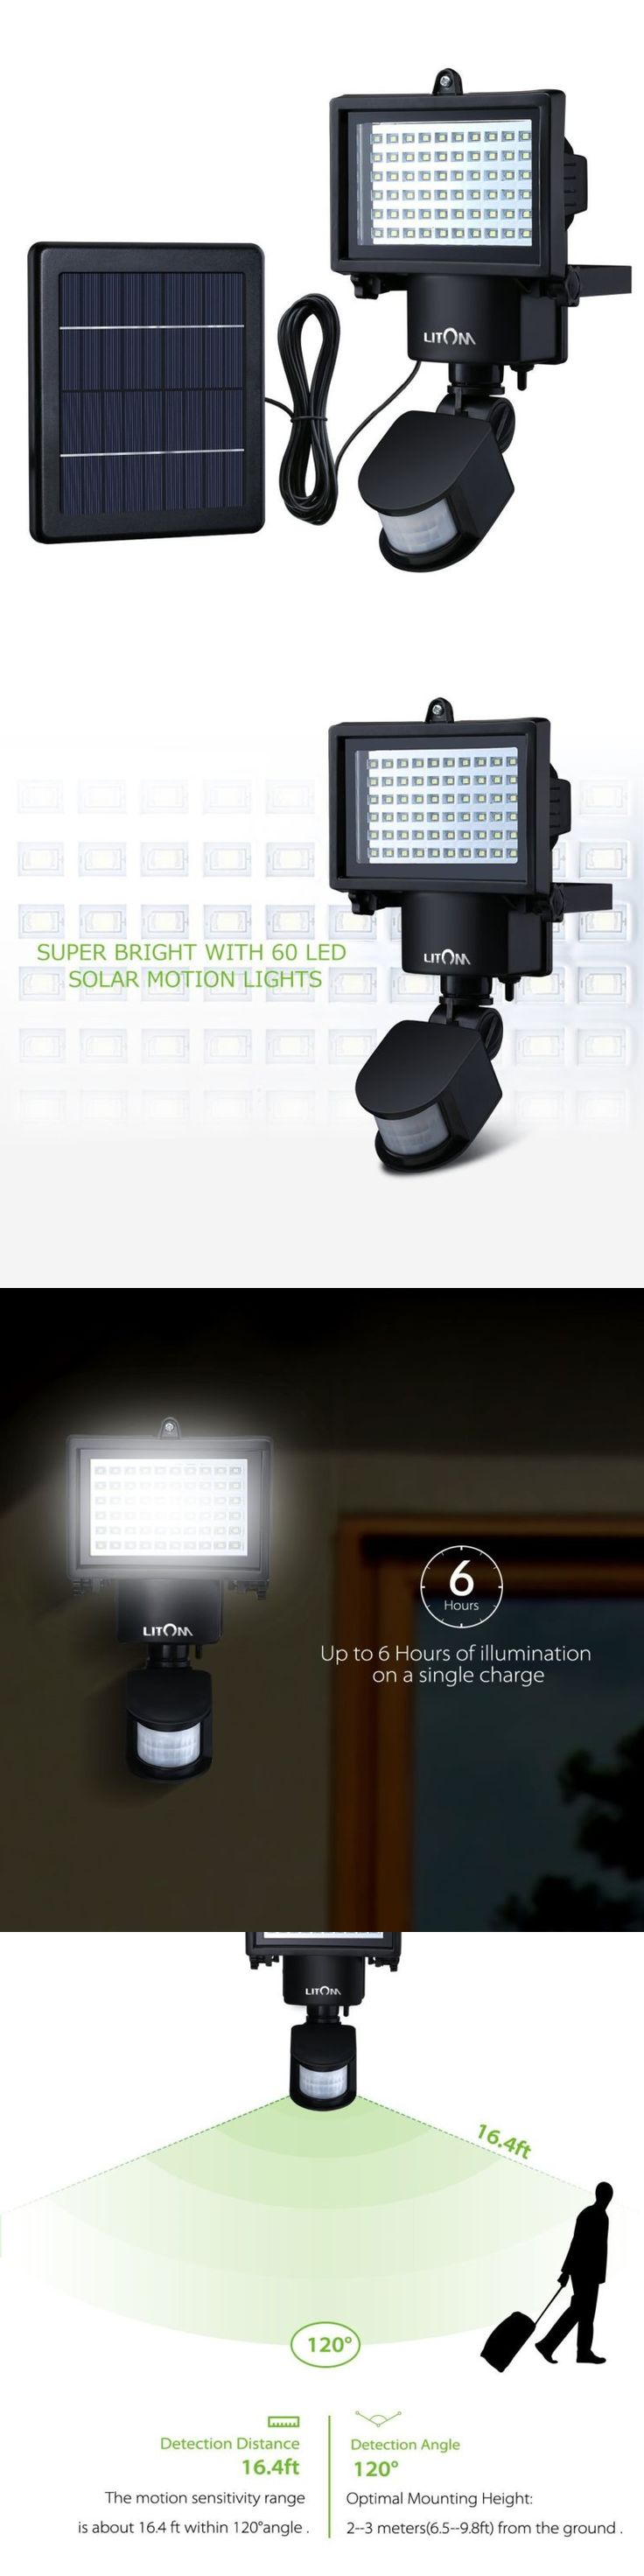 farm and garden: Super Bright Led Solar Powered Outdoor Garden Security Motion Sensor Flood Light BUY IT NOW ONLY: $40.56